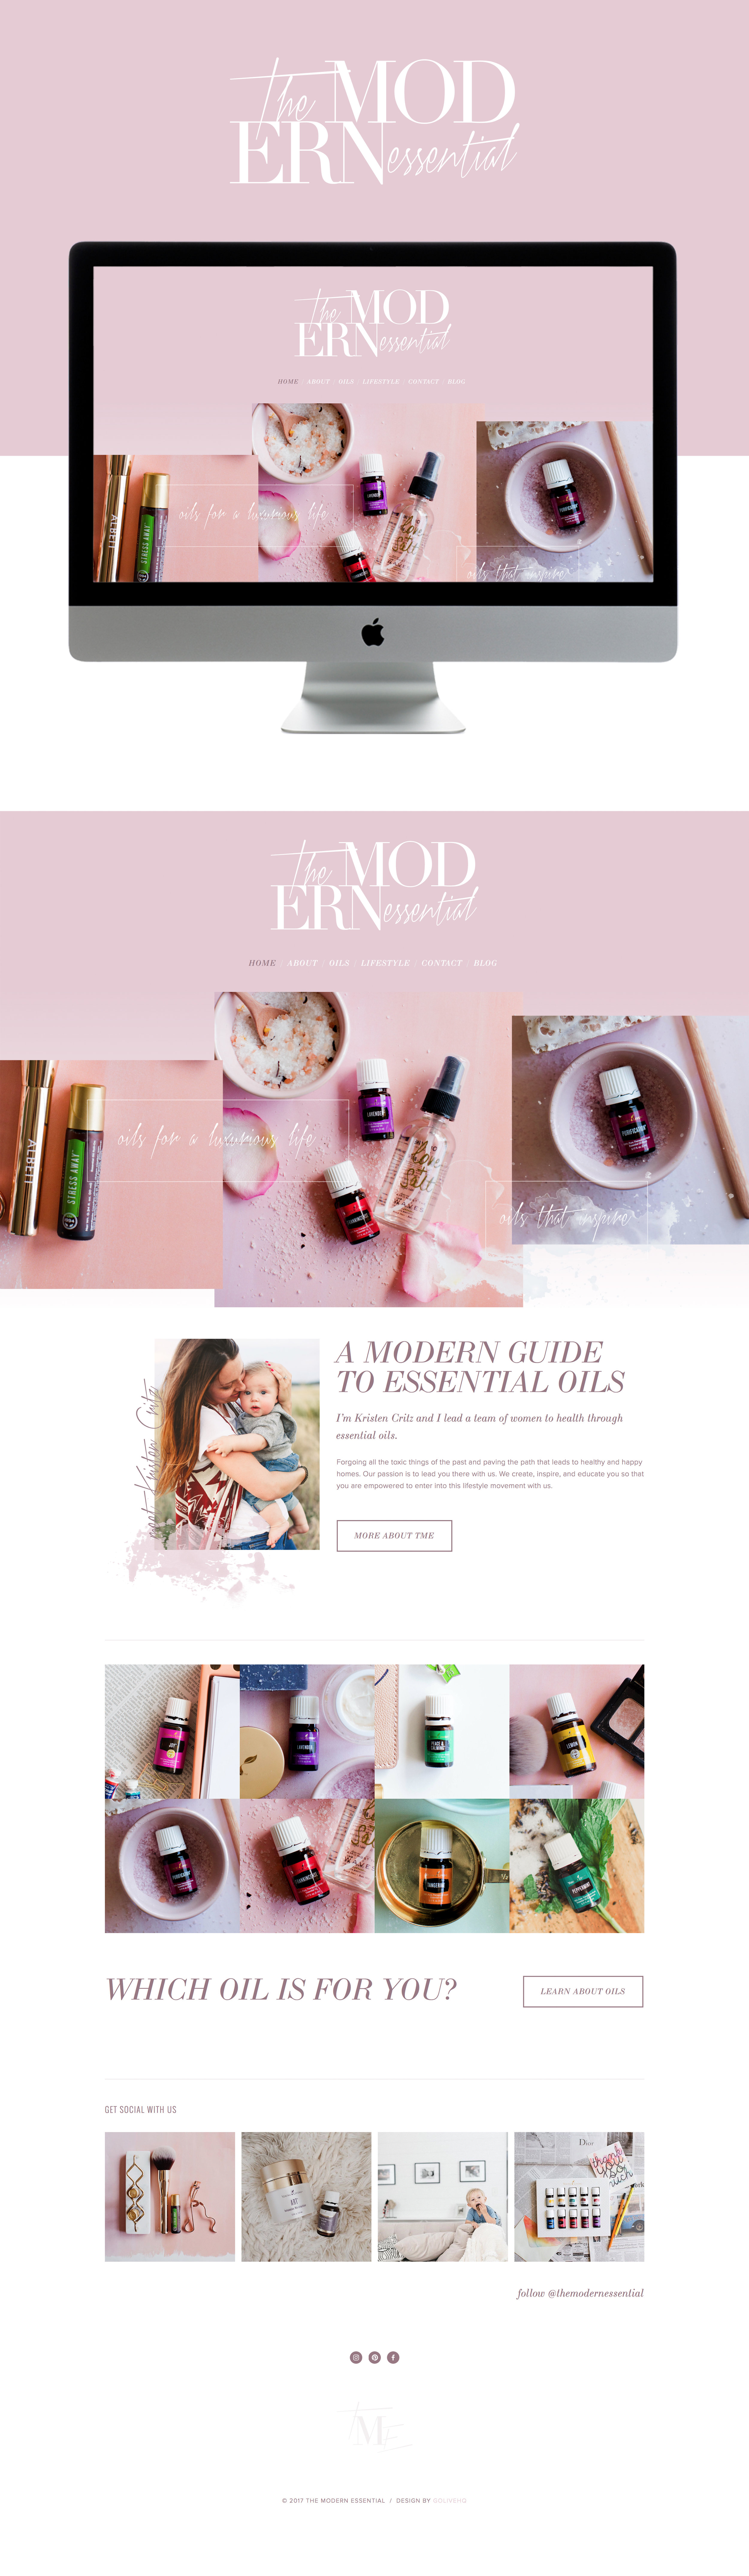 fashionable, clean & whimsical squarespace website design   designed by: golivehq.co